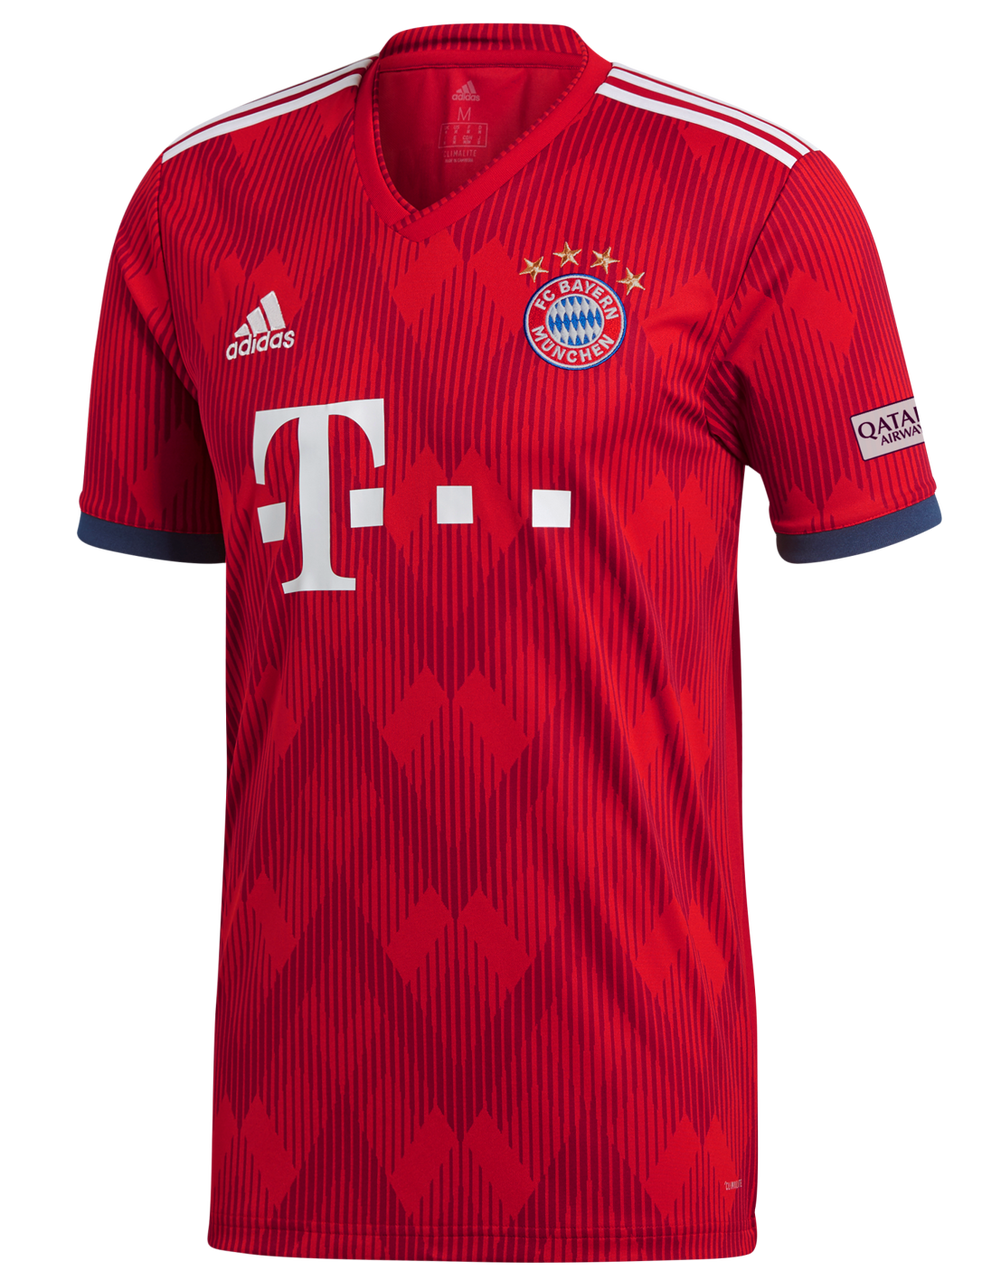 49db0c89e07 Adidas FC Bayern Munich Home Jersey 18 19 - Red White (51818) - ohp ...